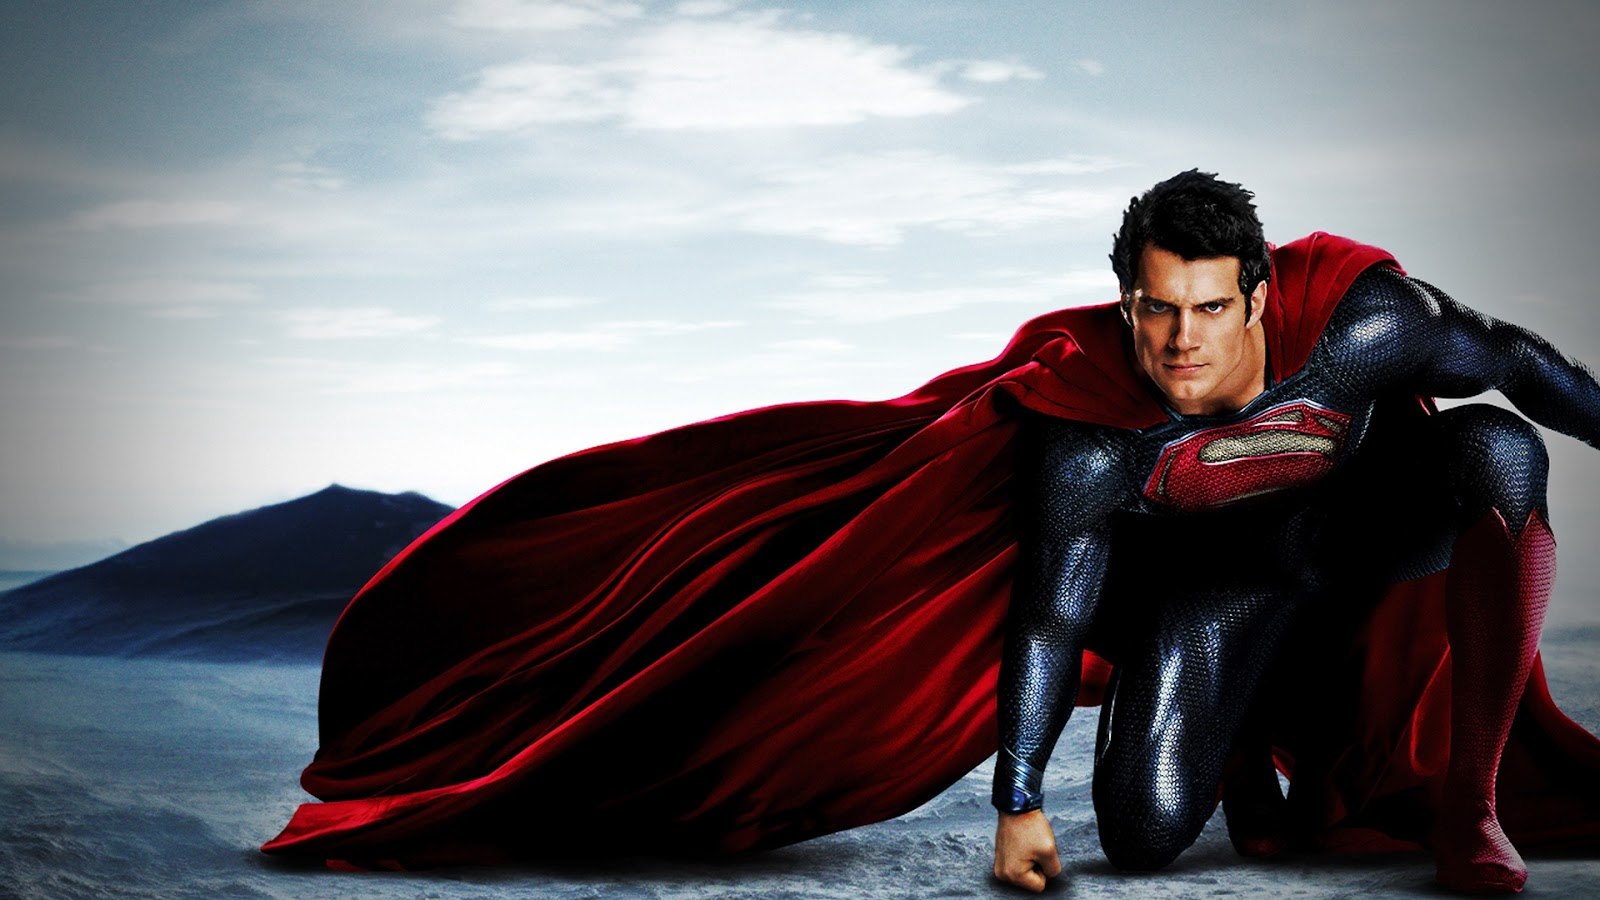 Hollywood Movies Hd Wallpapers: Movies Wallpapers Part 3